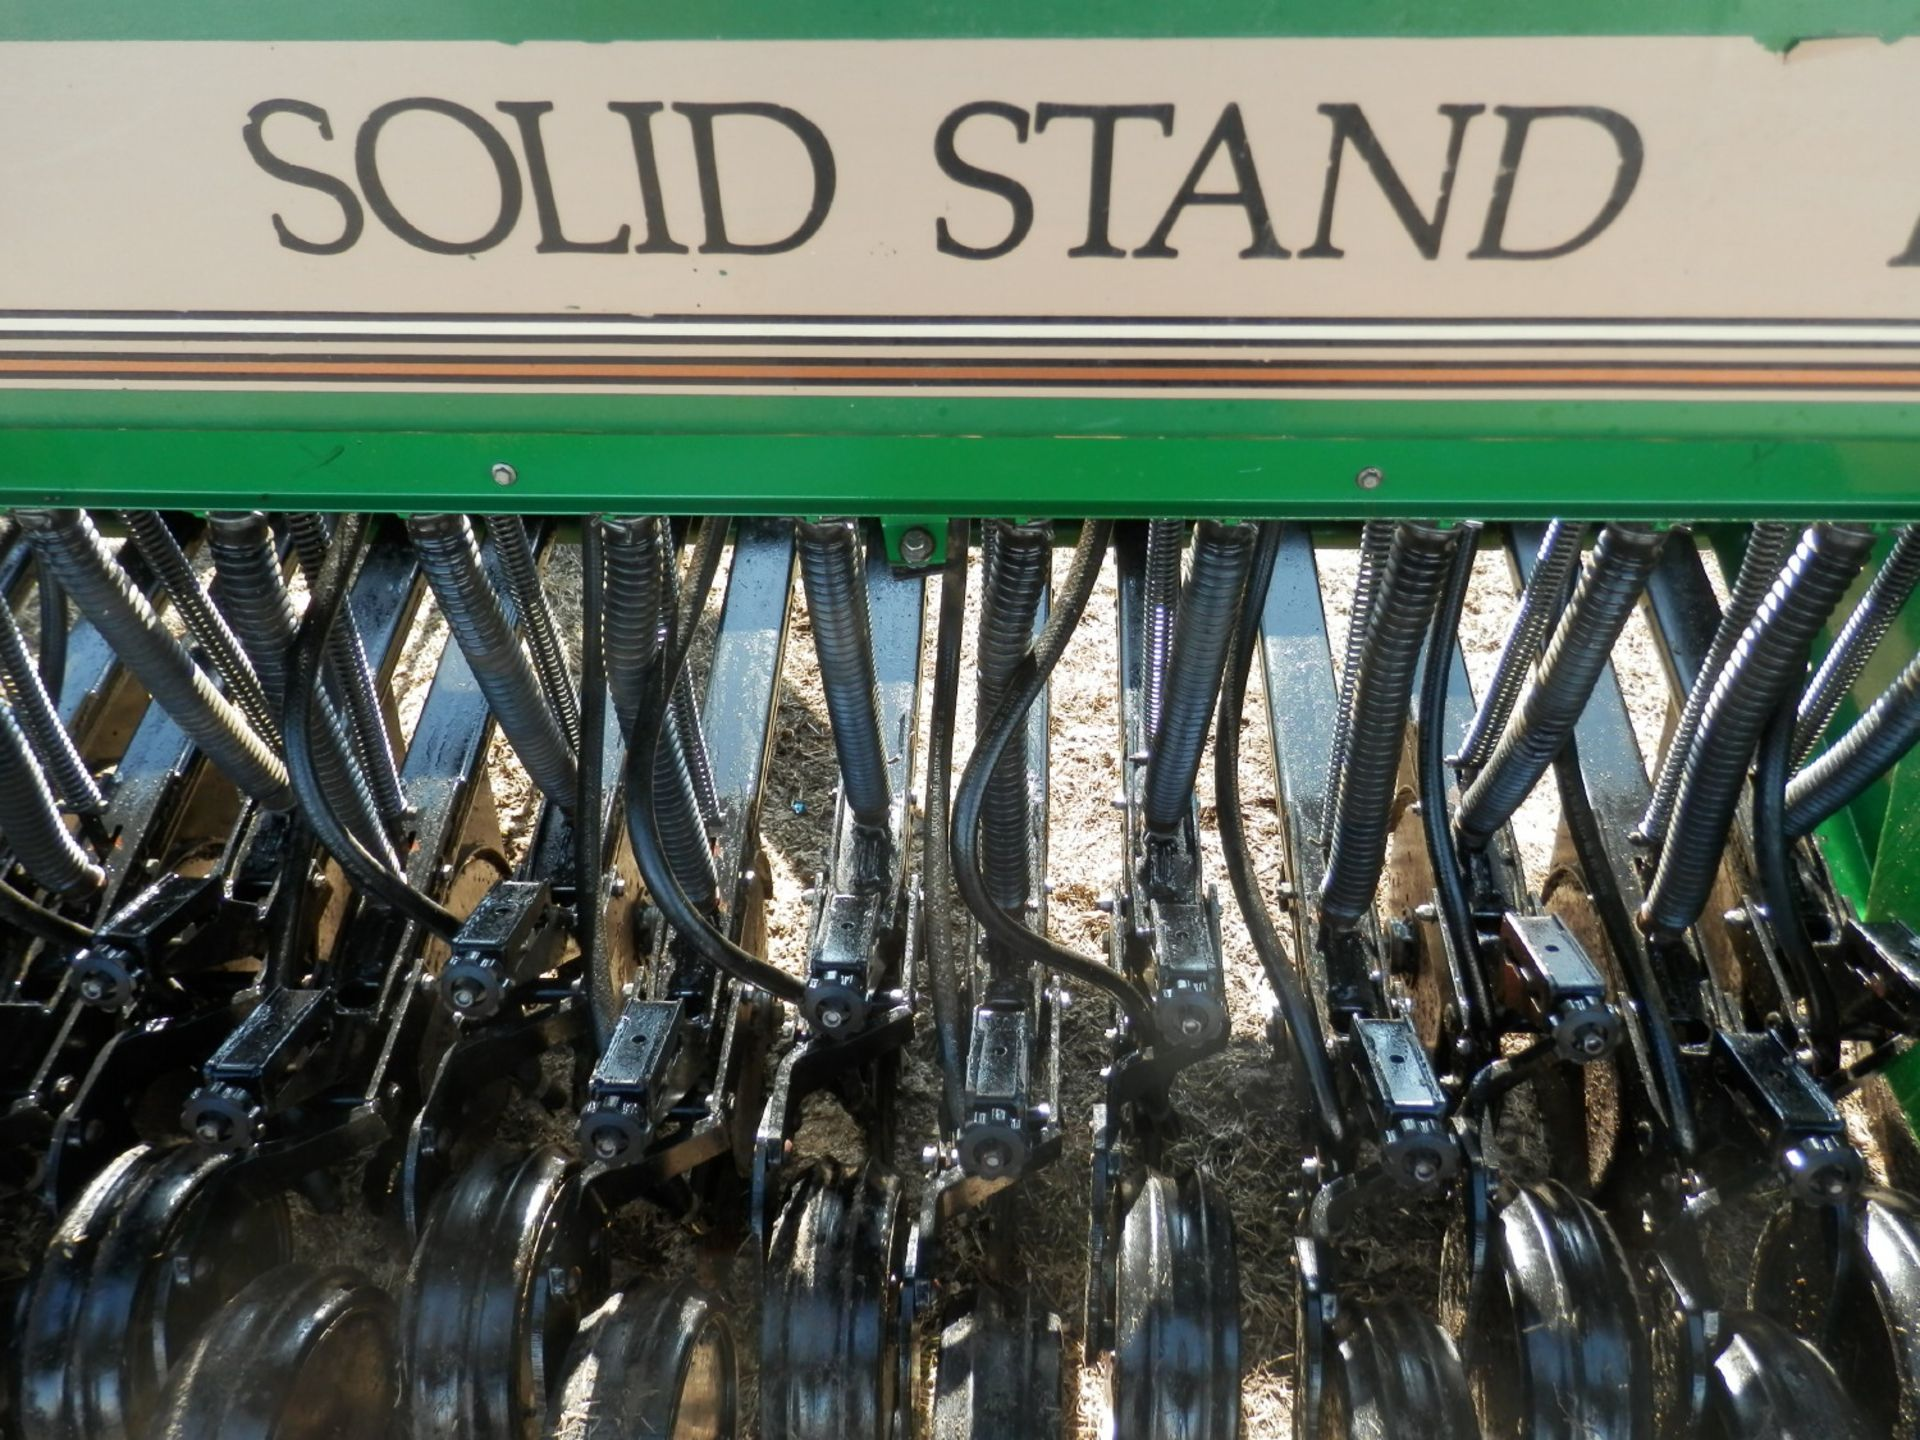 GREAT PLAINS SURESTAND 13 MDL EWD13-260693 26x6 GRAIN DRILL - Image 9 of 11